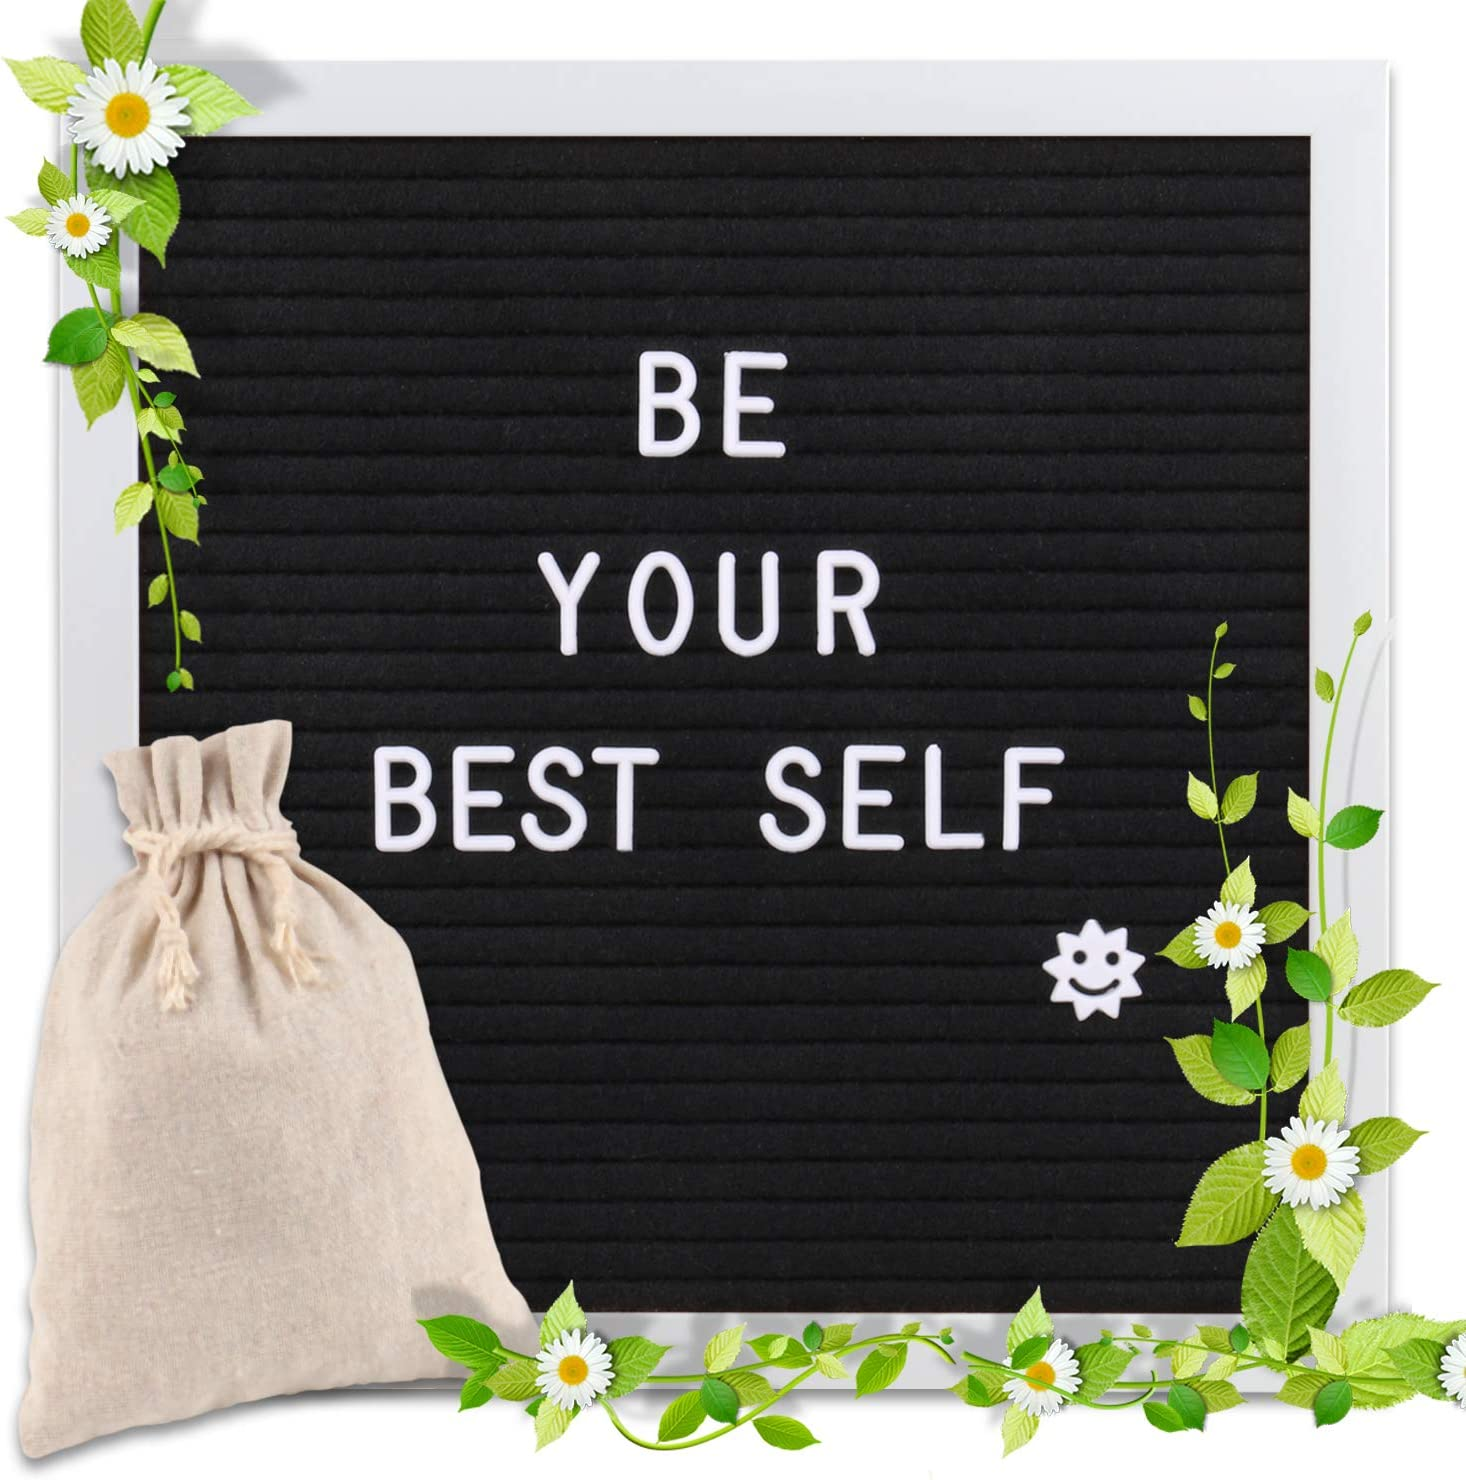 Changeable Letter Board 10x10 inches, Message Sign Board with Canvas Bag, Adjustable Stand,Wall Mount and 340 Letters, Numbers & Symbols (White)